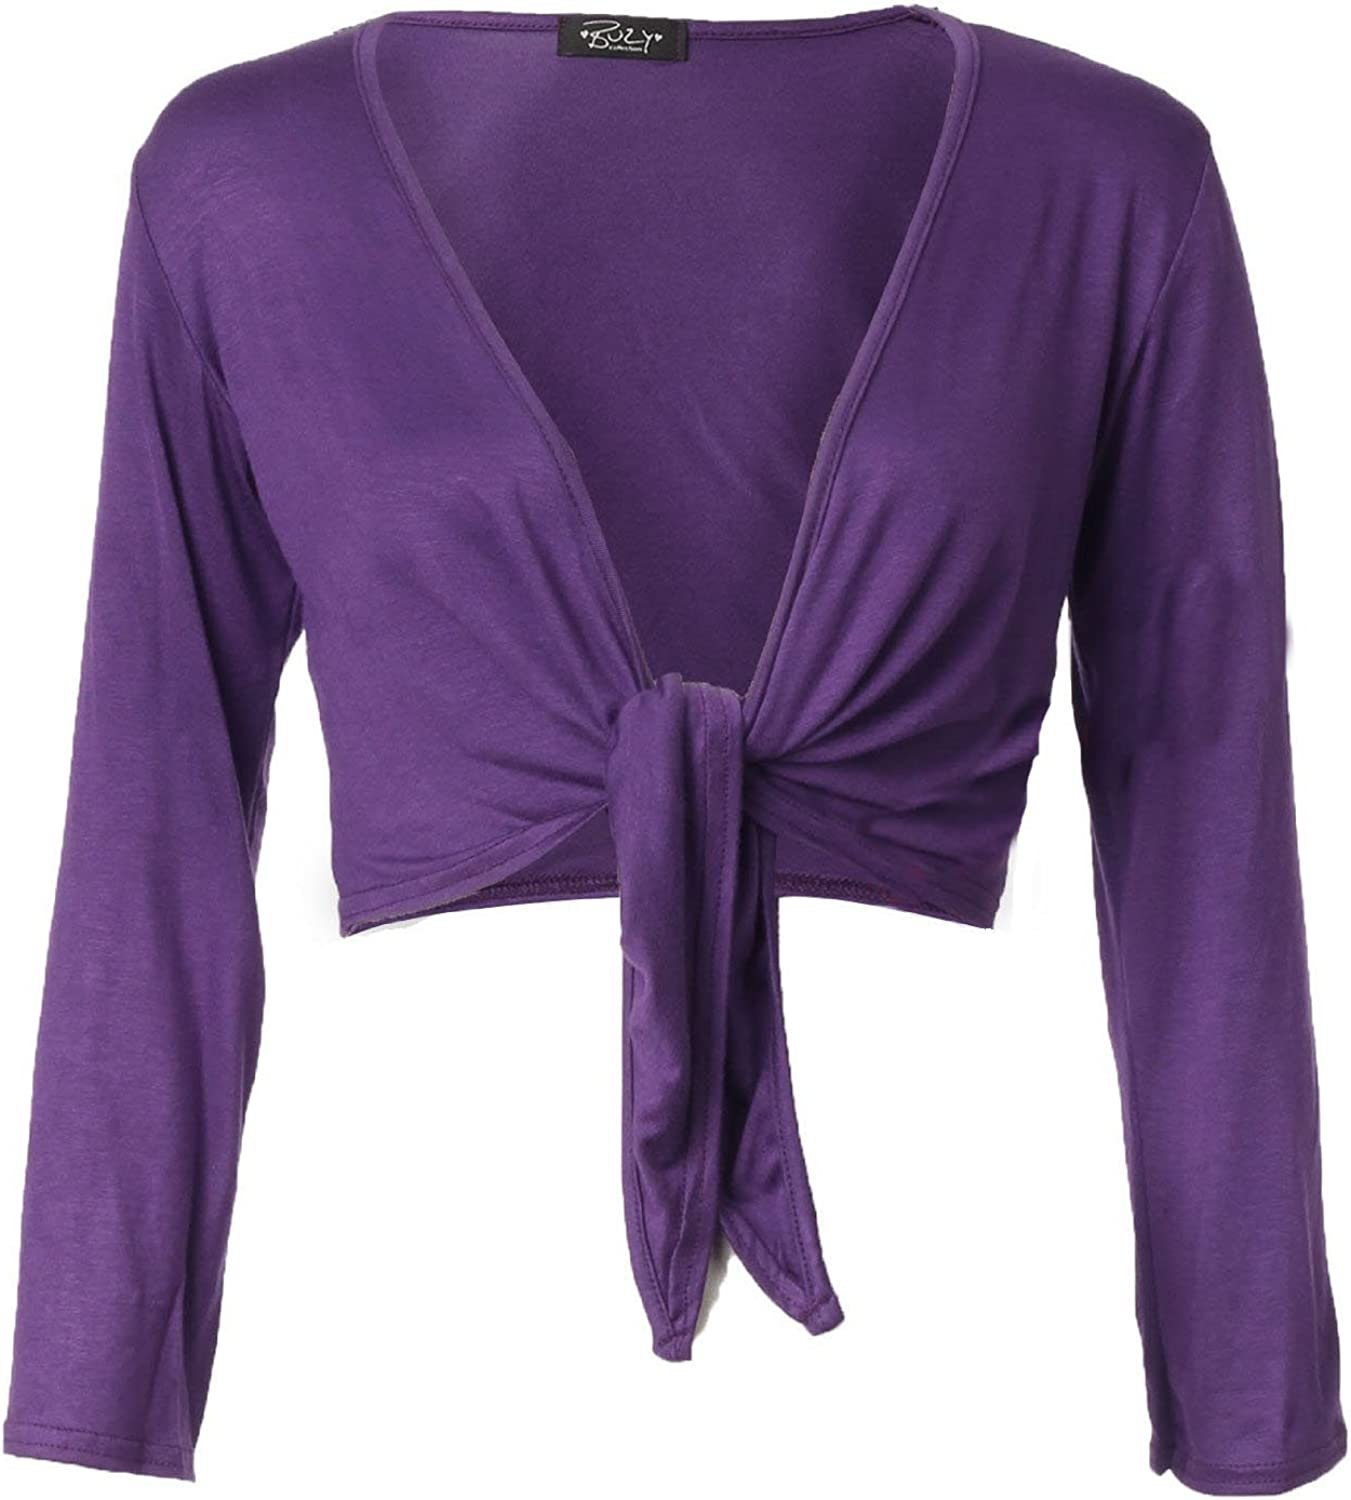 Forever Womens Plain Long Full Sleeves Front Tie Knot Shrug Stretchy Cardigan Top…